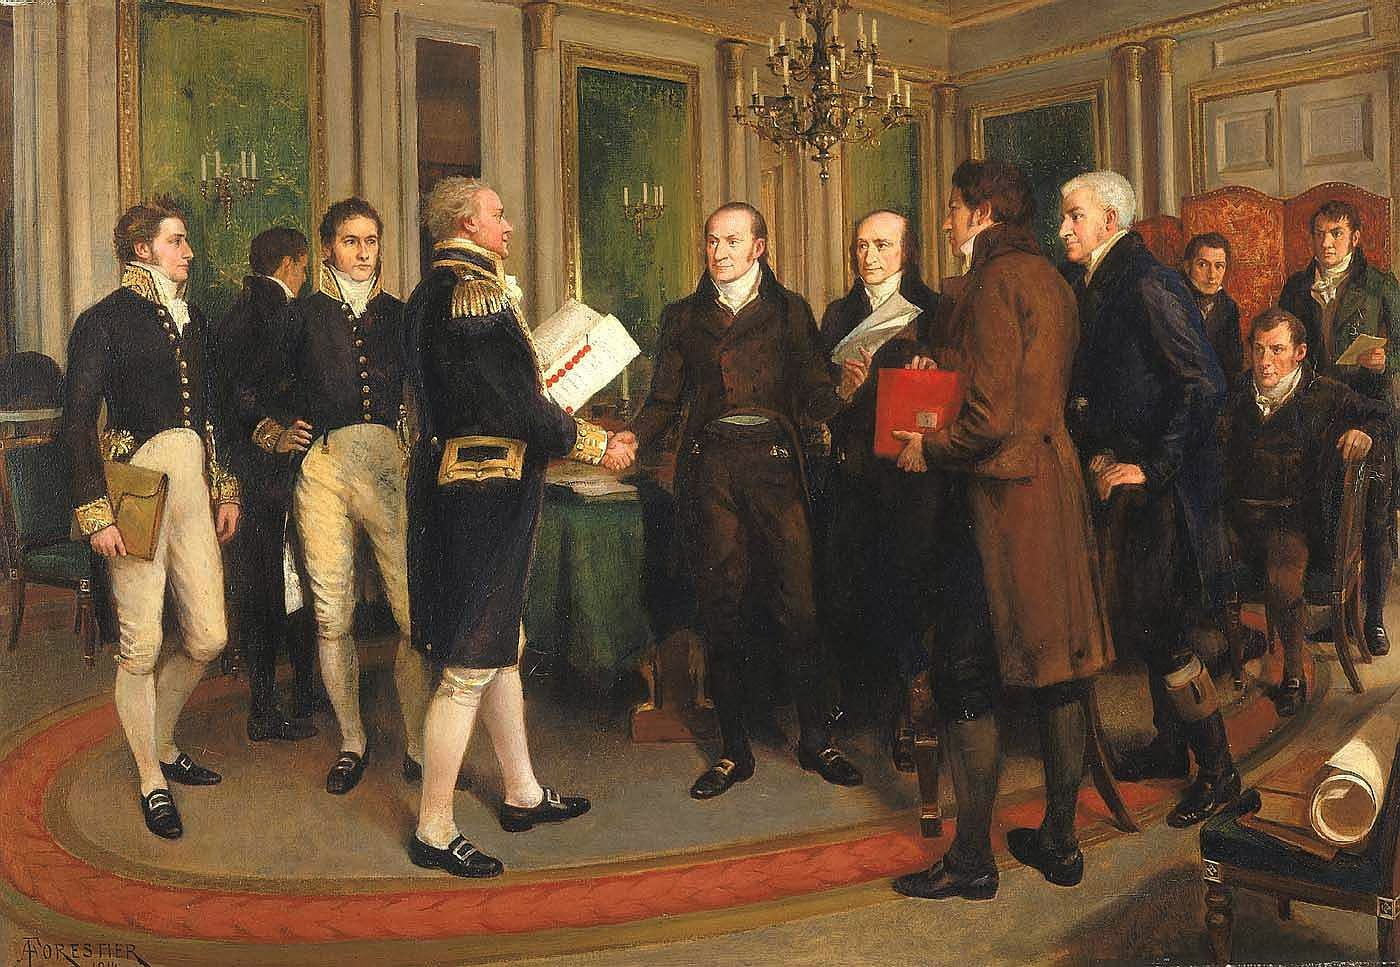 War of 1812: Hartford Convention and Treaty of Ghent